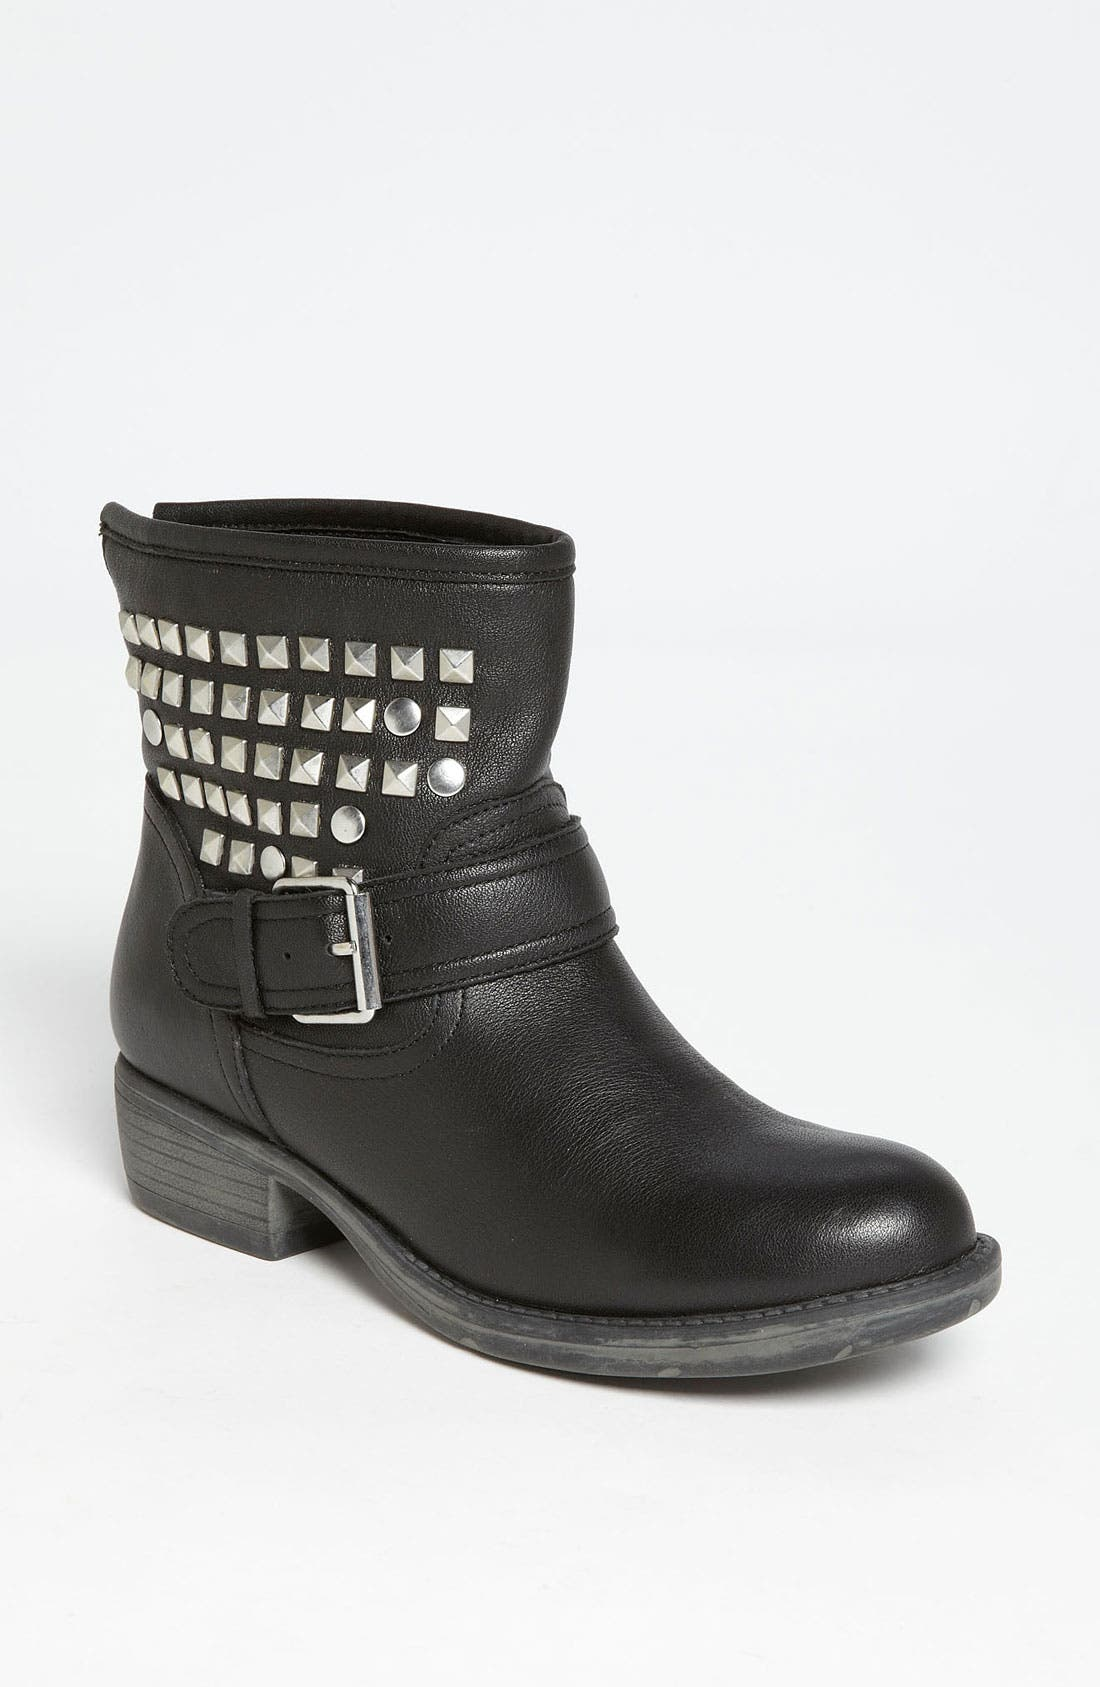 Alternate Image 1 Selected - Steve Madden 'Outtlaww' Boot